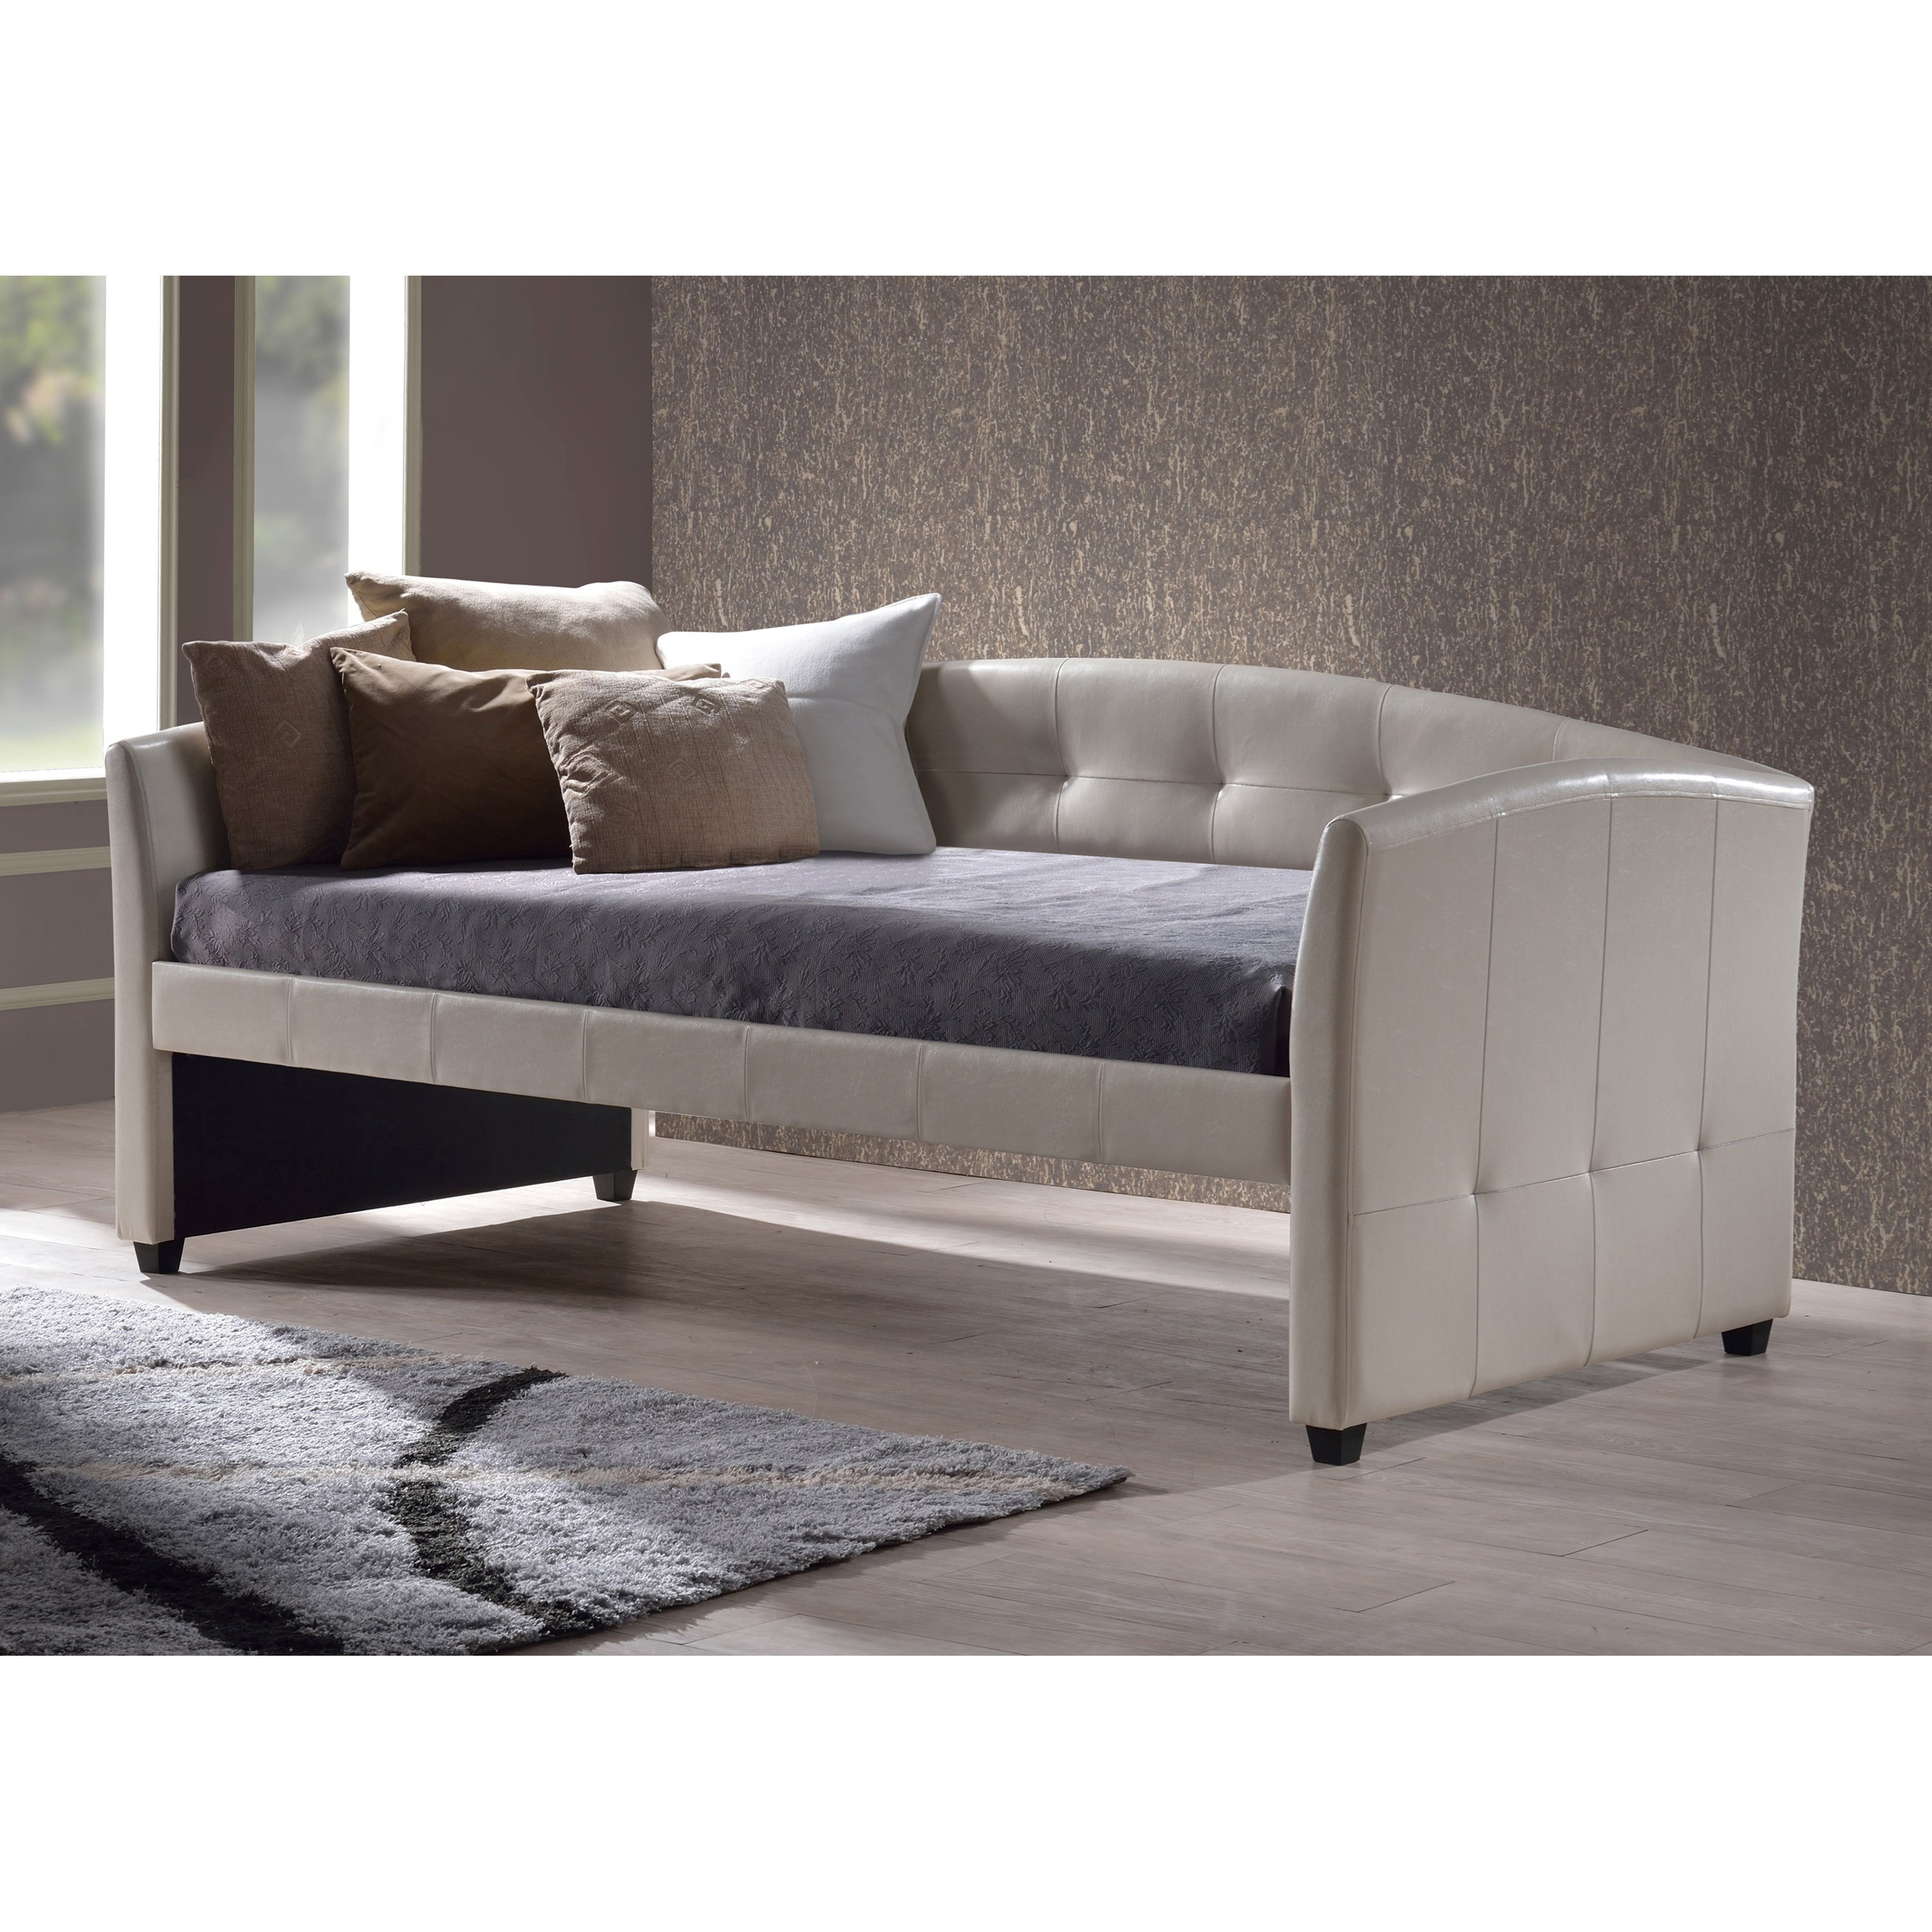 Hillsdale Daybeds Napoli Daybed - Item Number: 1061DB